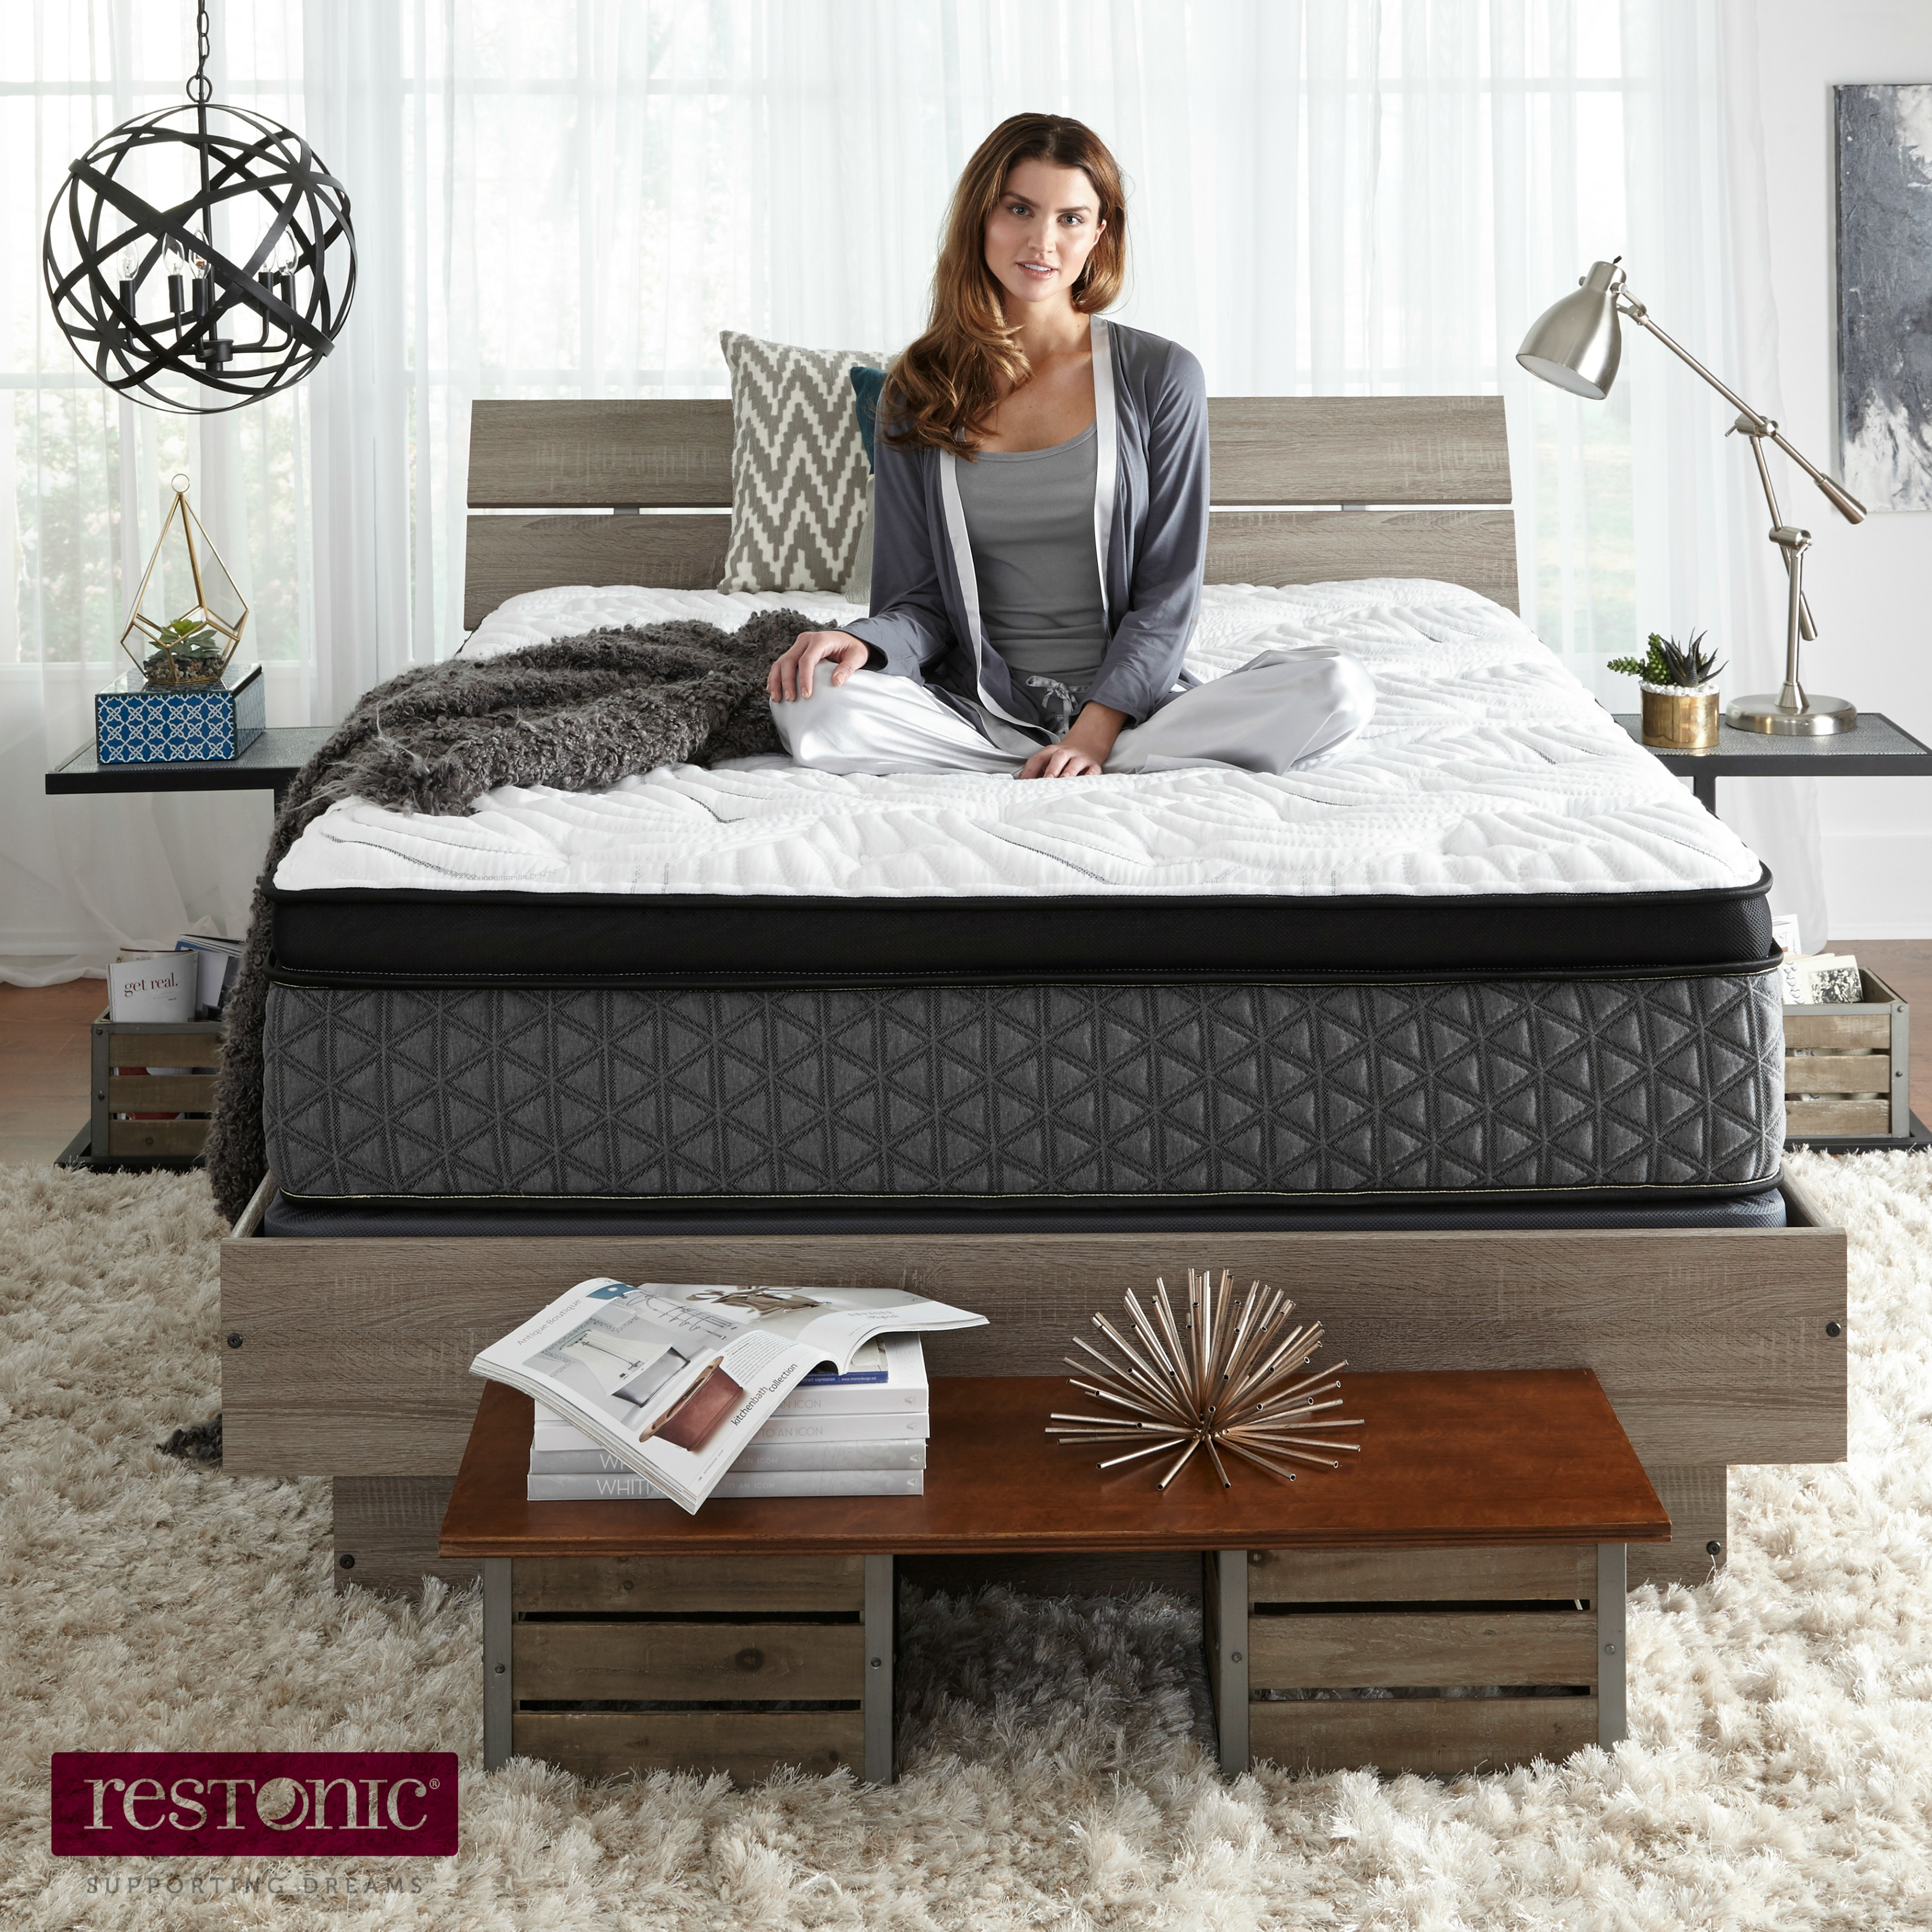 restonic the true mattress mattresses goodbed or picture reviews a com measure